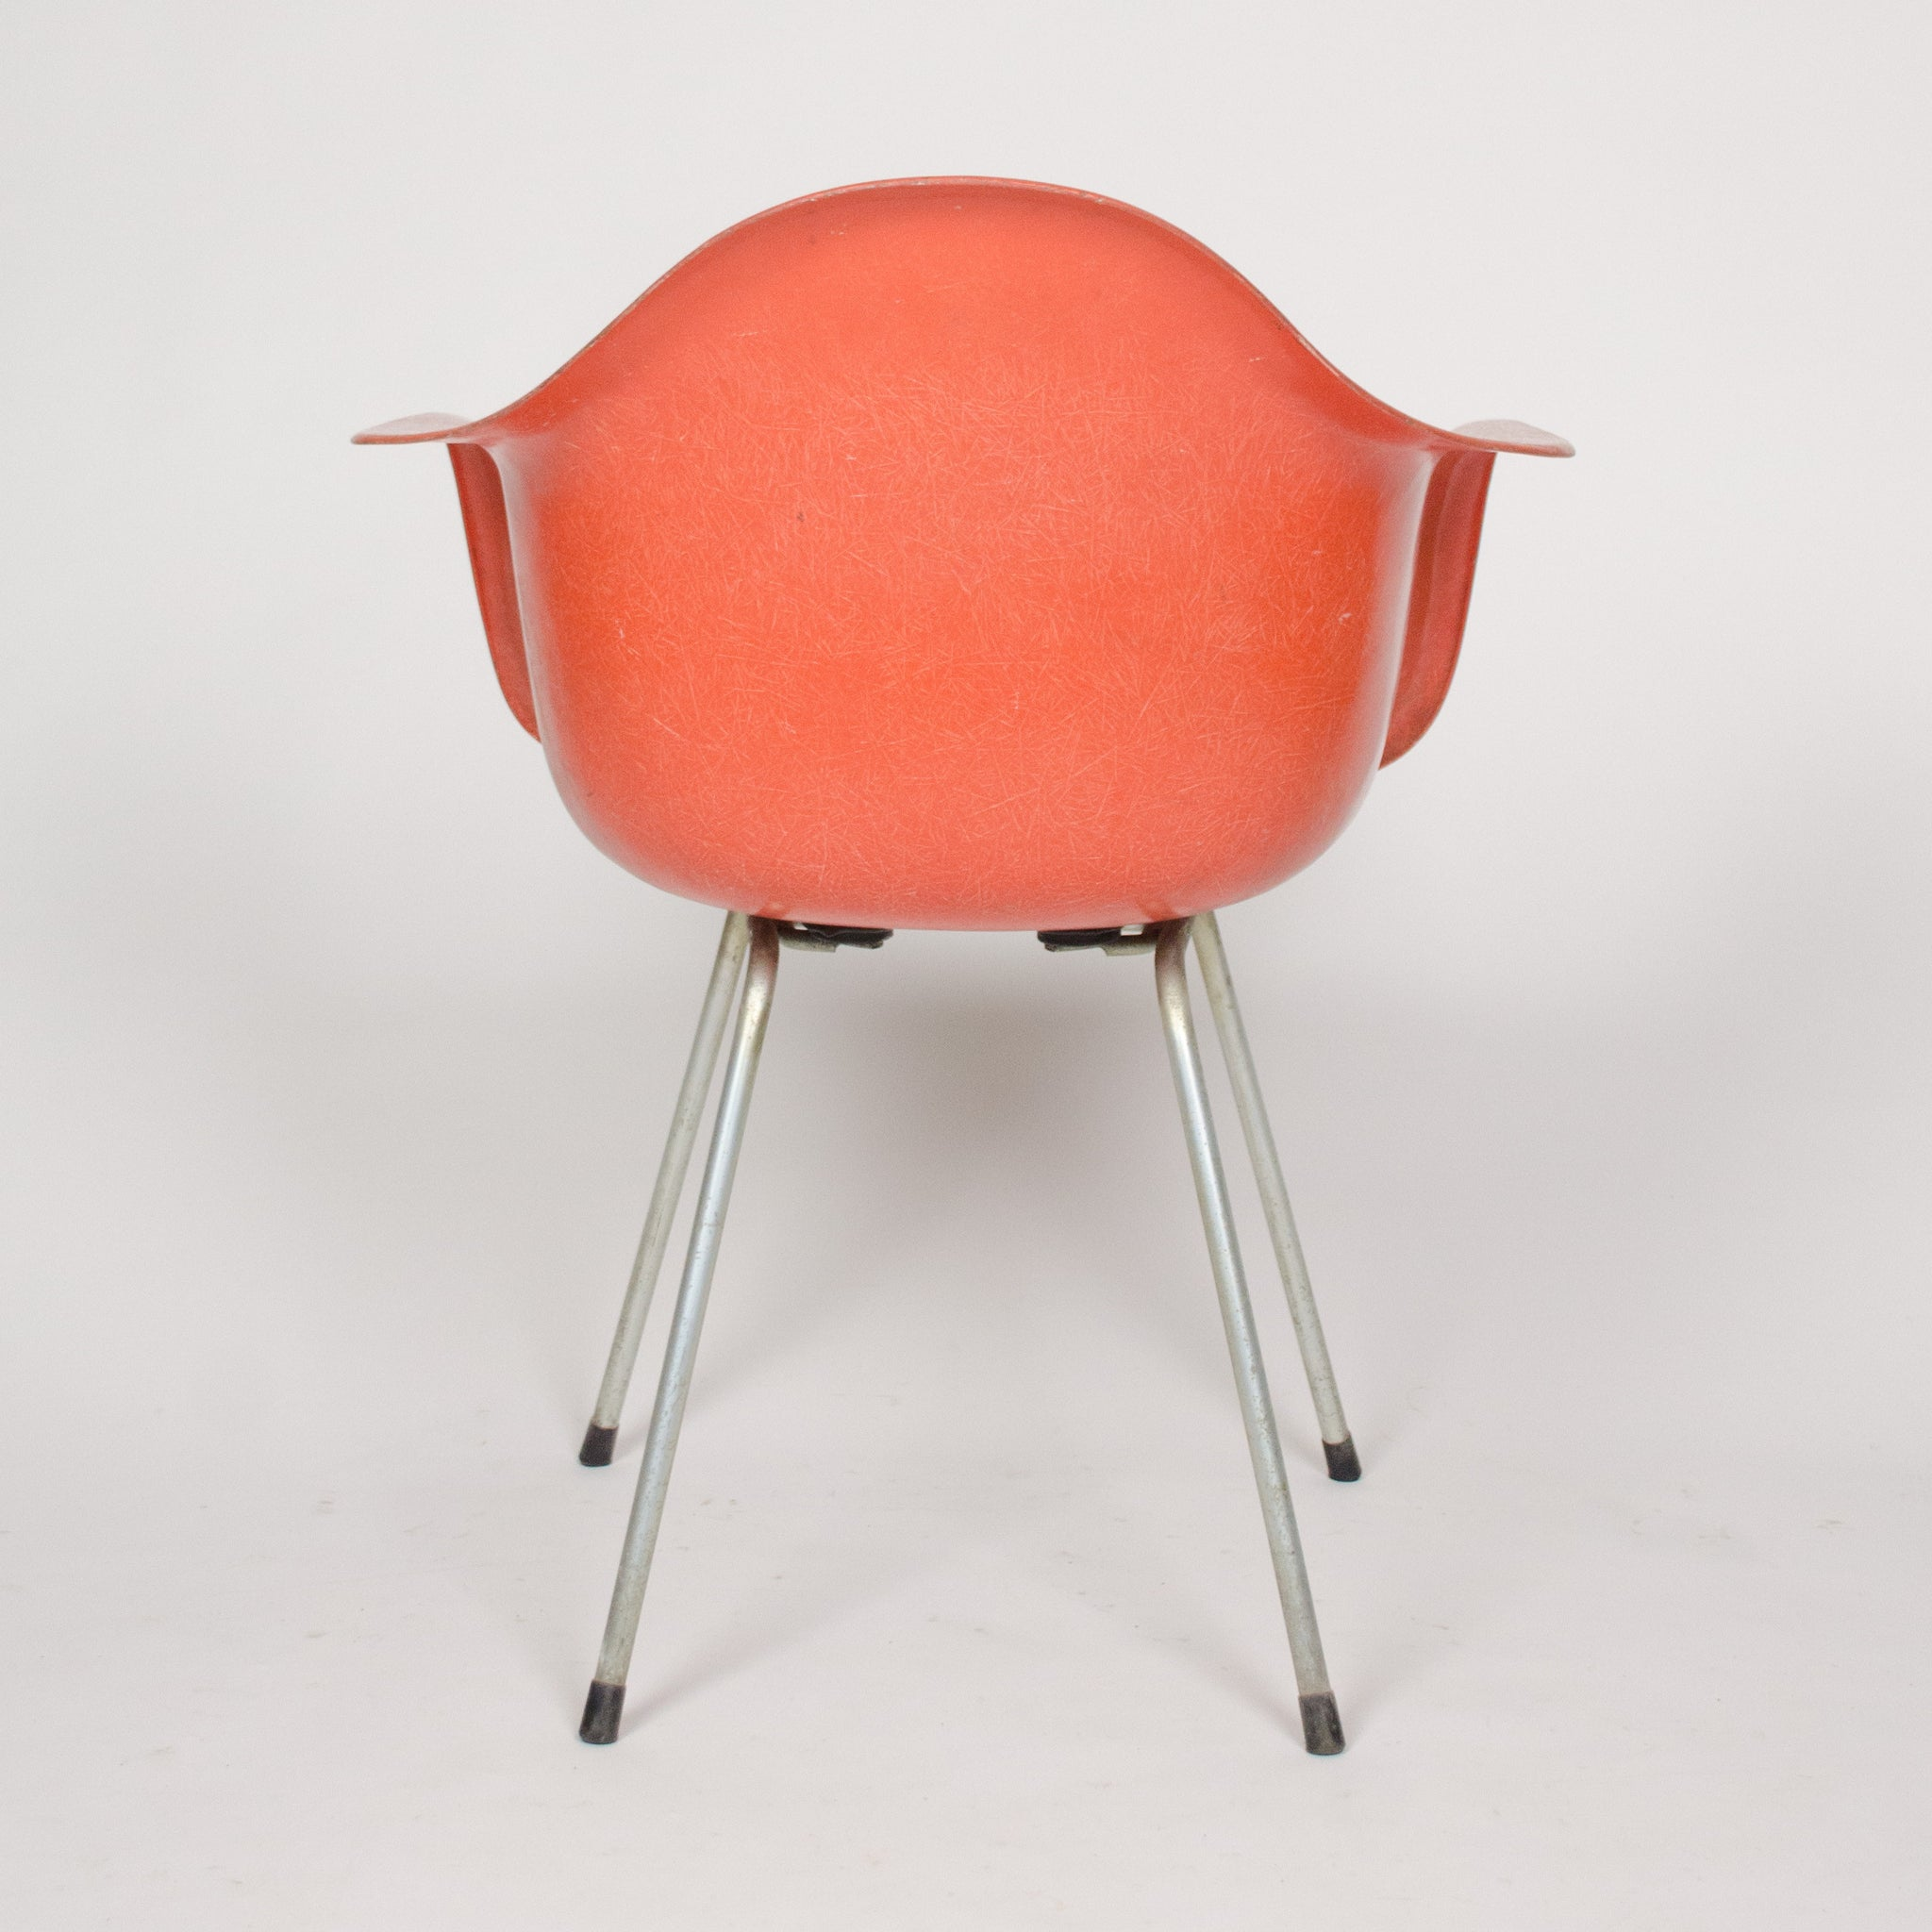 SOLD 1960's Eames Herman Miller Red / Orange Fiberglass Shell Chairs Arm Shells (3x)